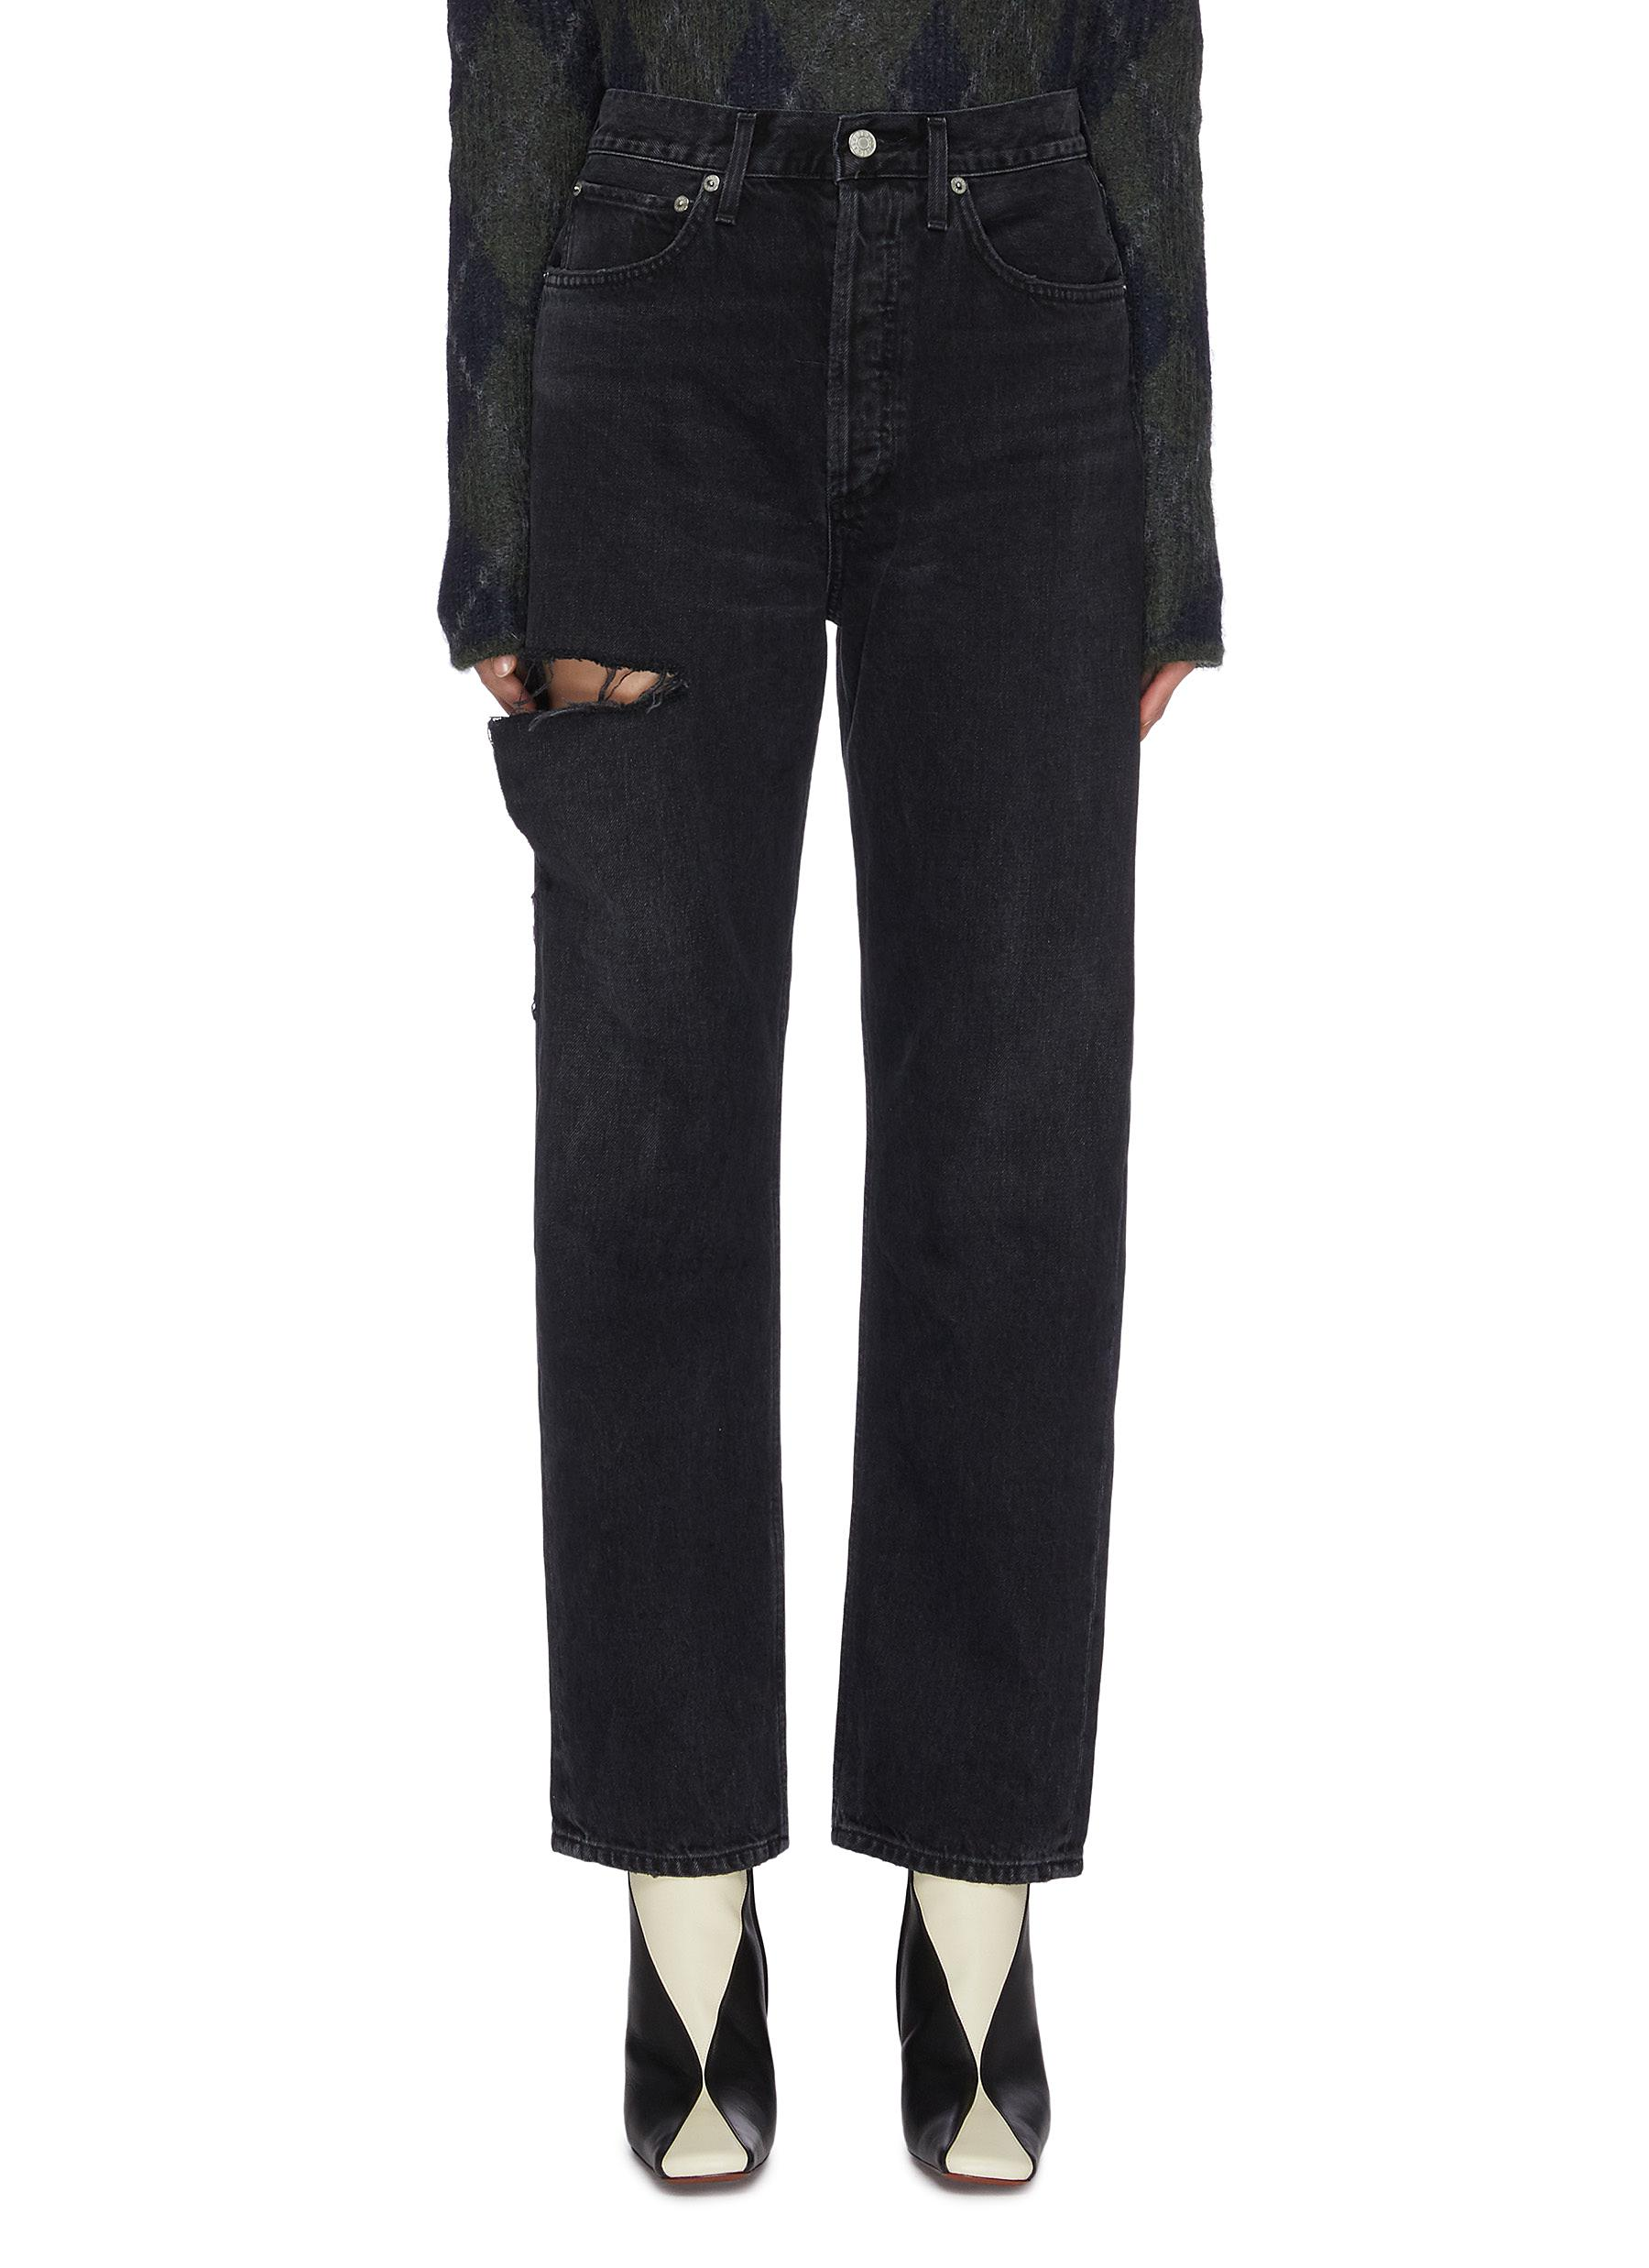 Buy Agolde Jeans '90s' ripped thigh straight leg jeans